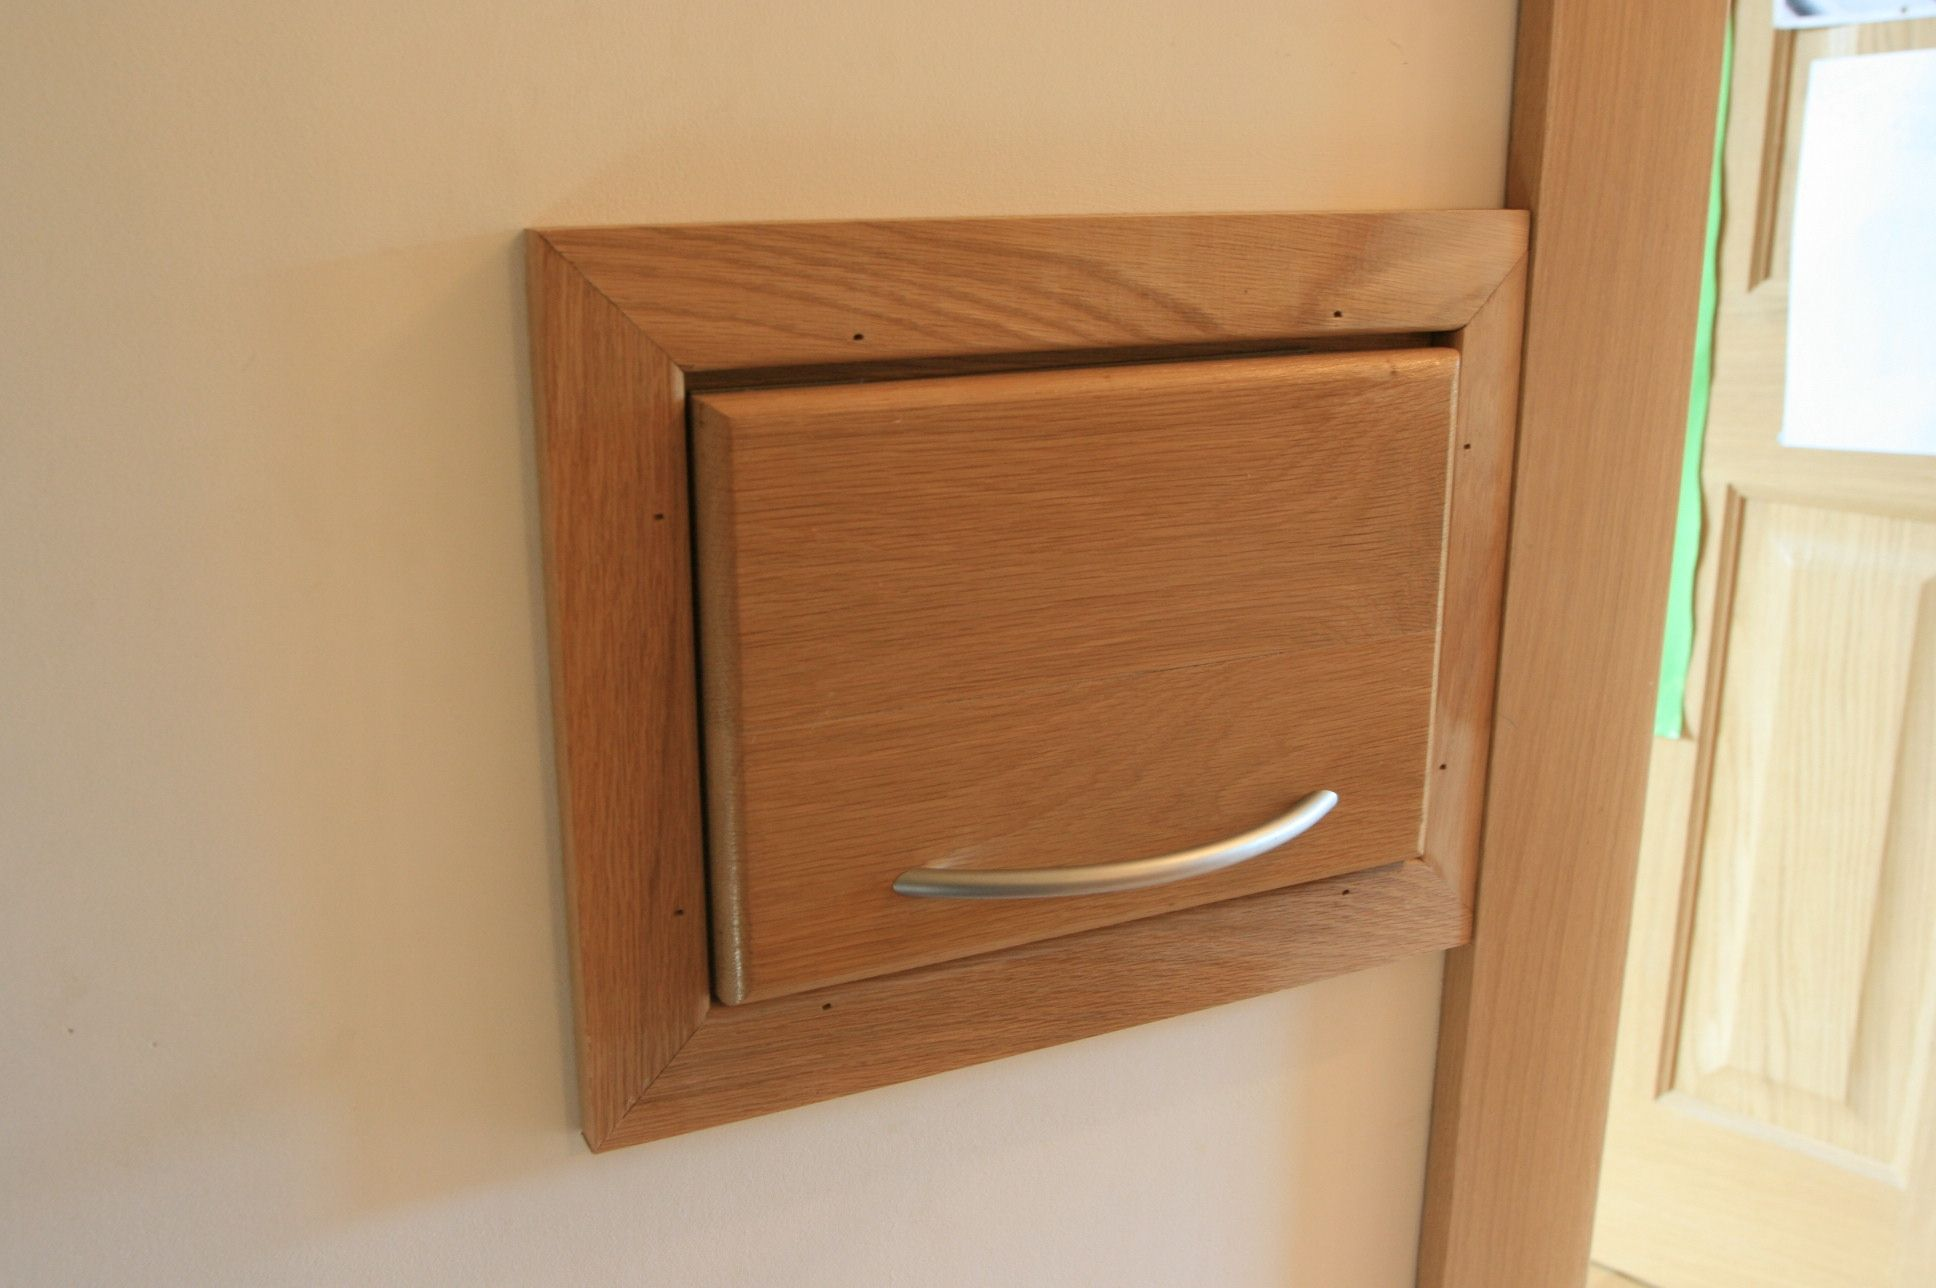 laundry chute with fire-retarding flap | ideas for the laundry room